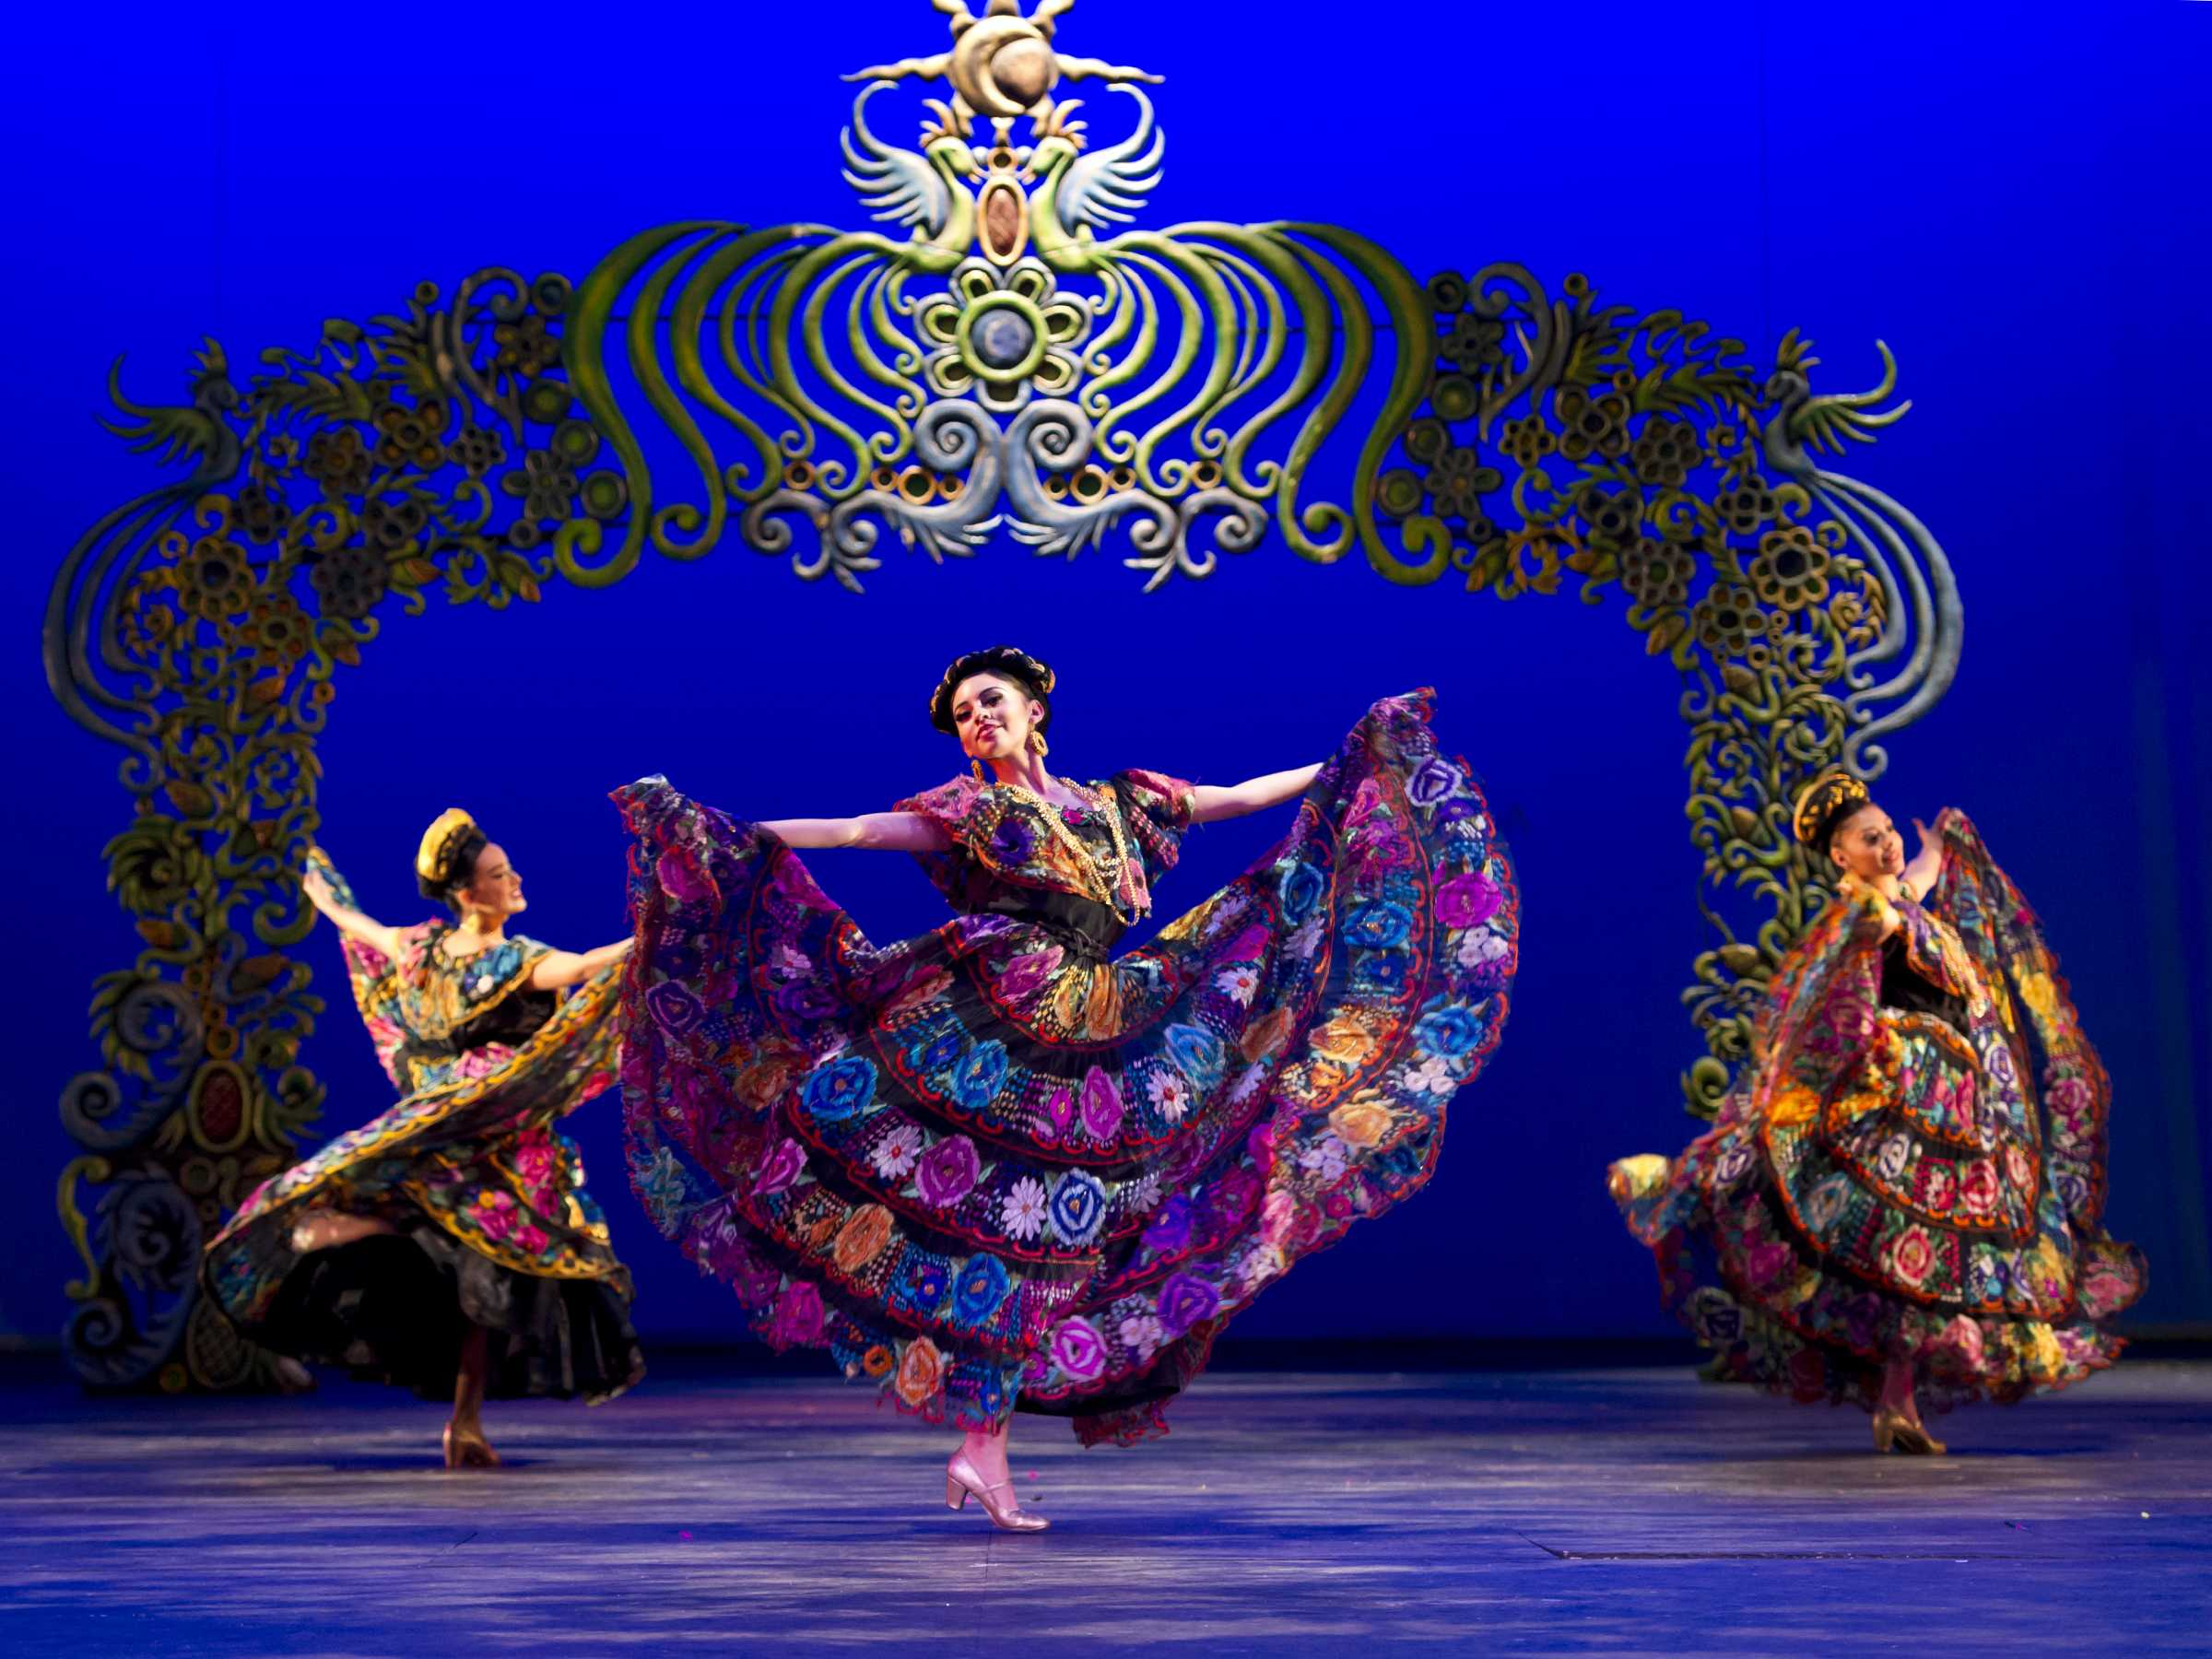 Ballet Folklórico showcases Mexican culture to educate public